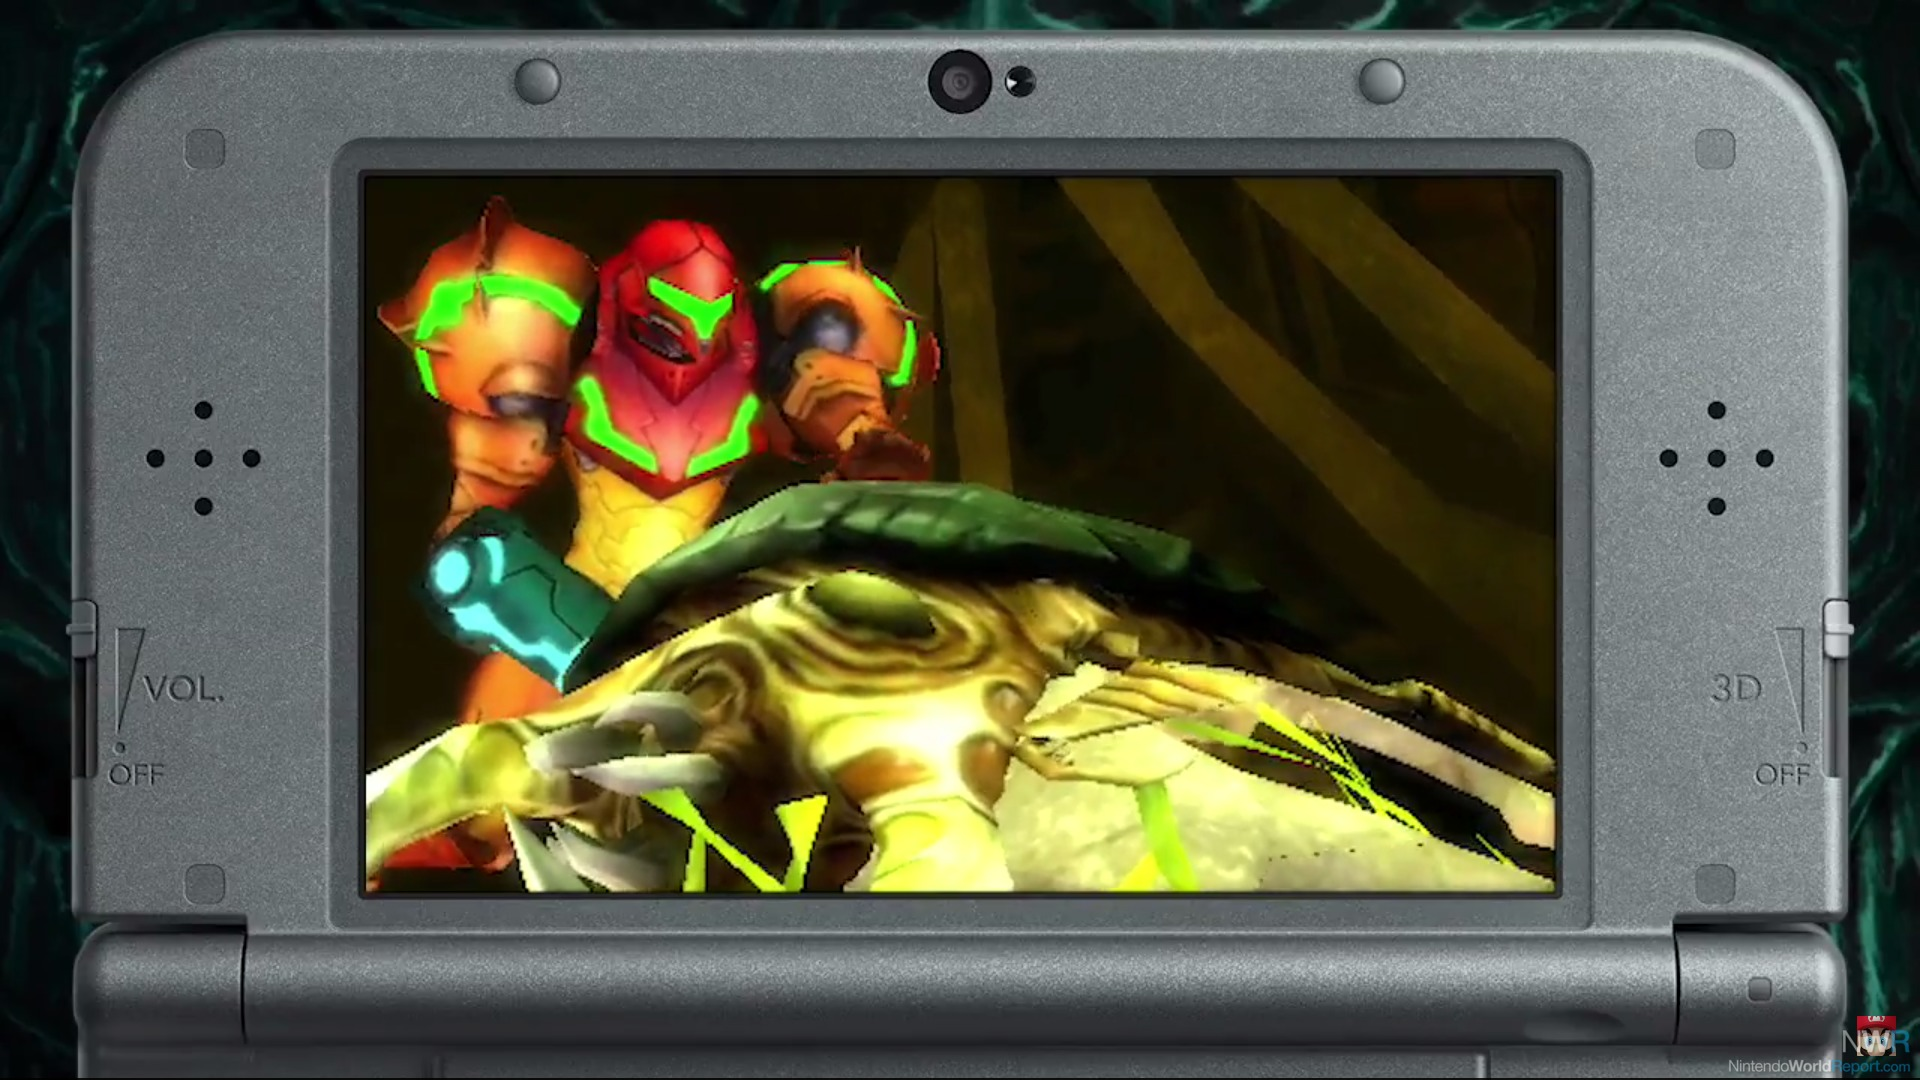 Nintendo shows it is listening to fans with new Metroid Prime and Pokemon RPG